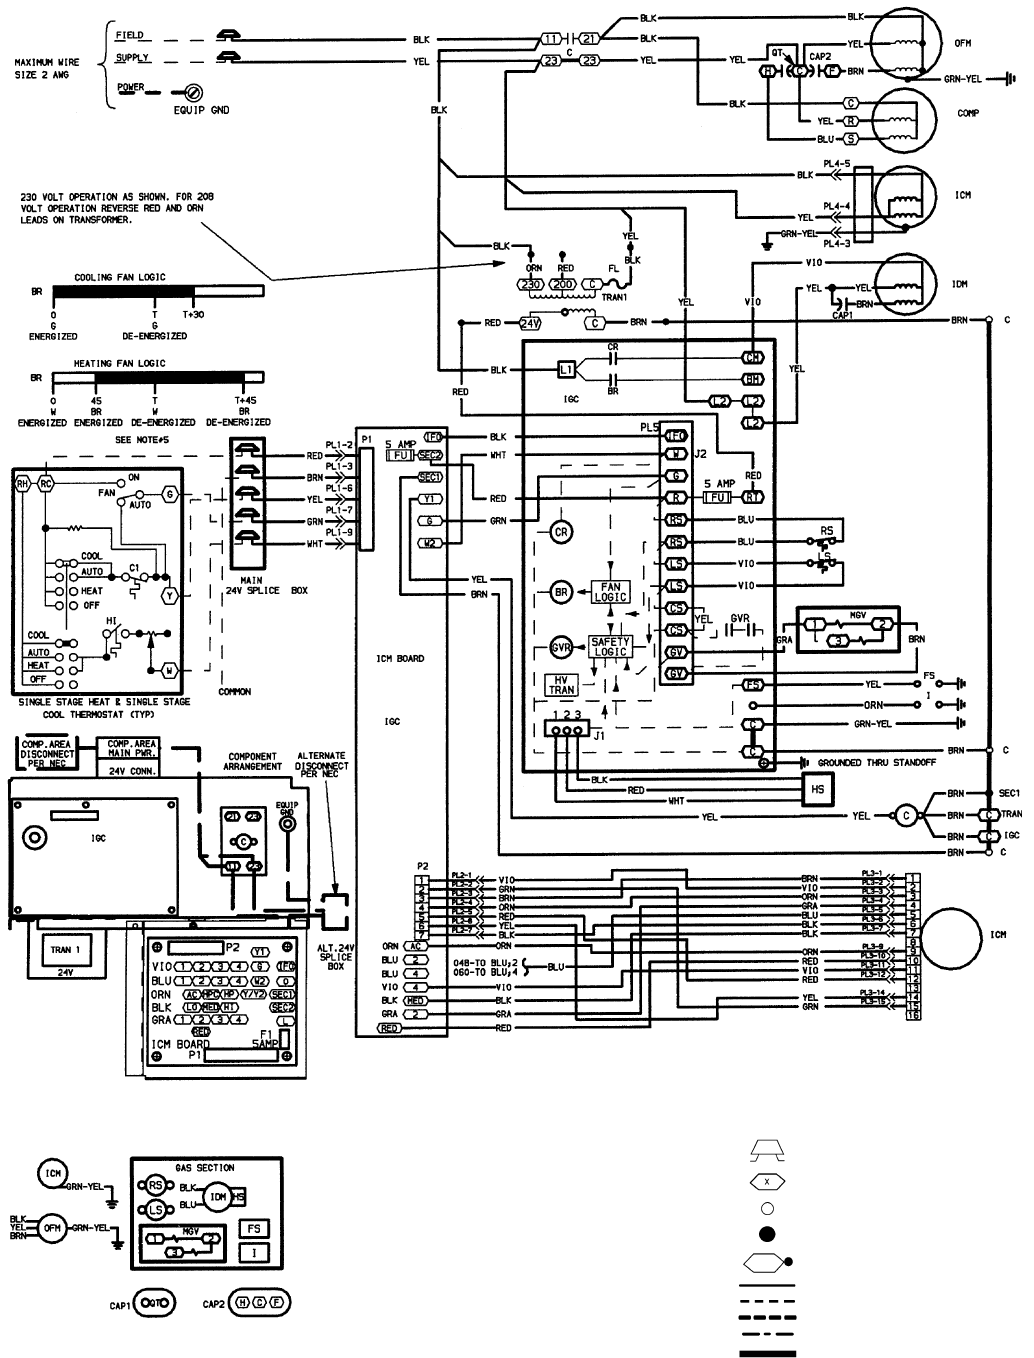 120 208 volt wiring diagram